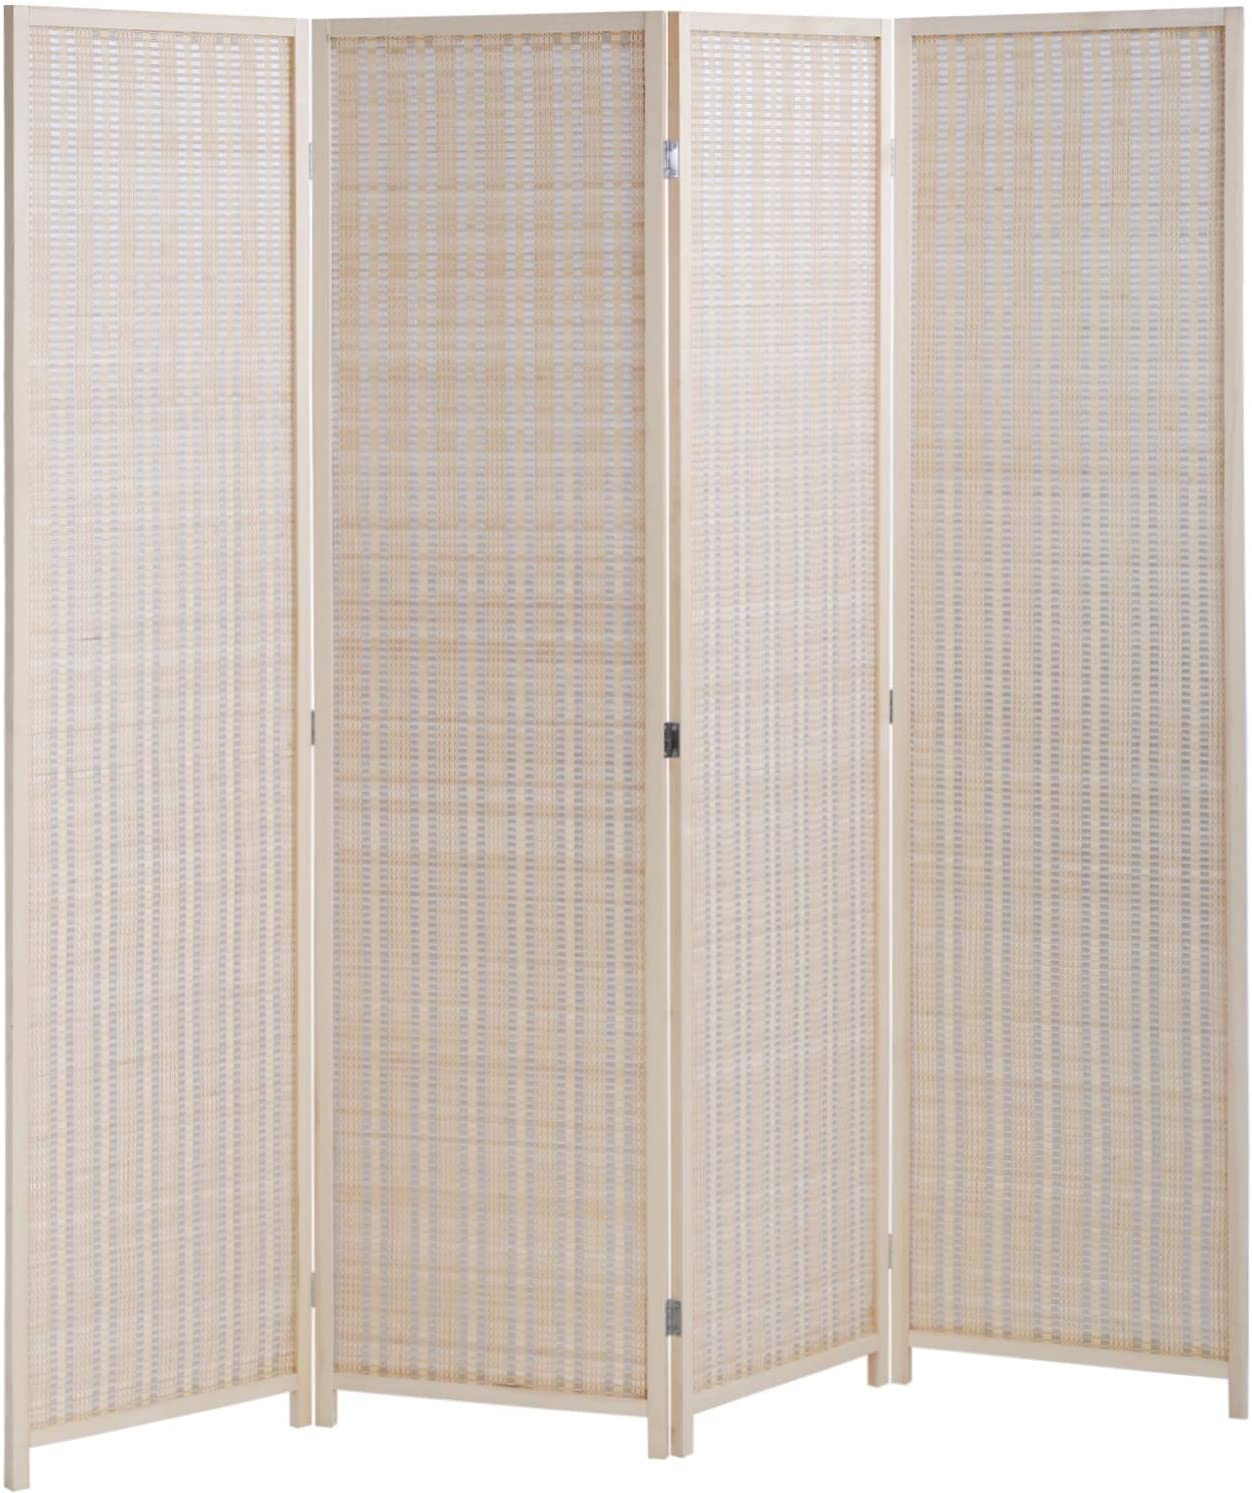 Amazon Com Fdw Room Divider Folding Privacy Screen 4 Panel 72 Inches High 17 7 Inches Wide Room Divider For Living Room Bedroom Study Natural Furniture Decor